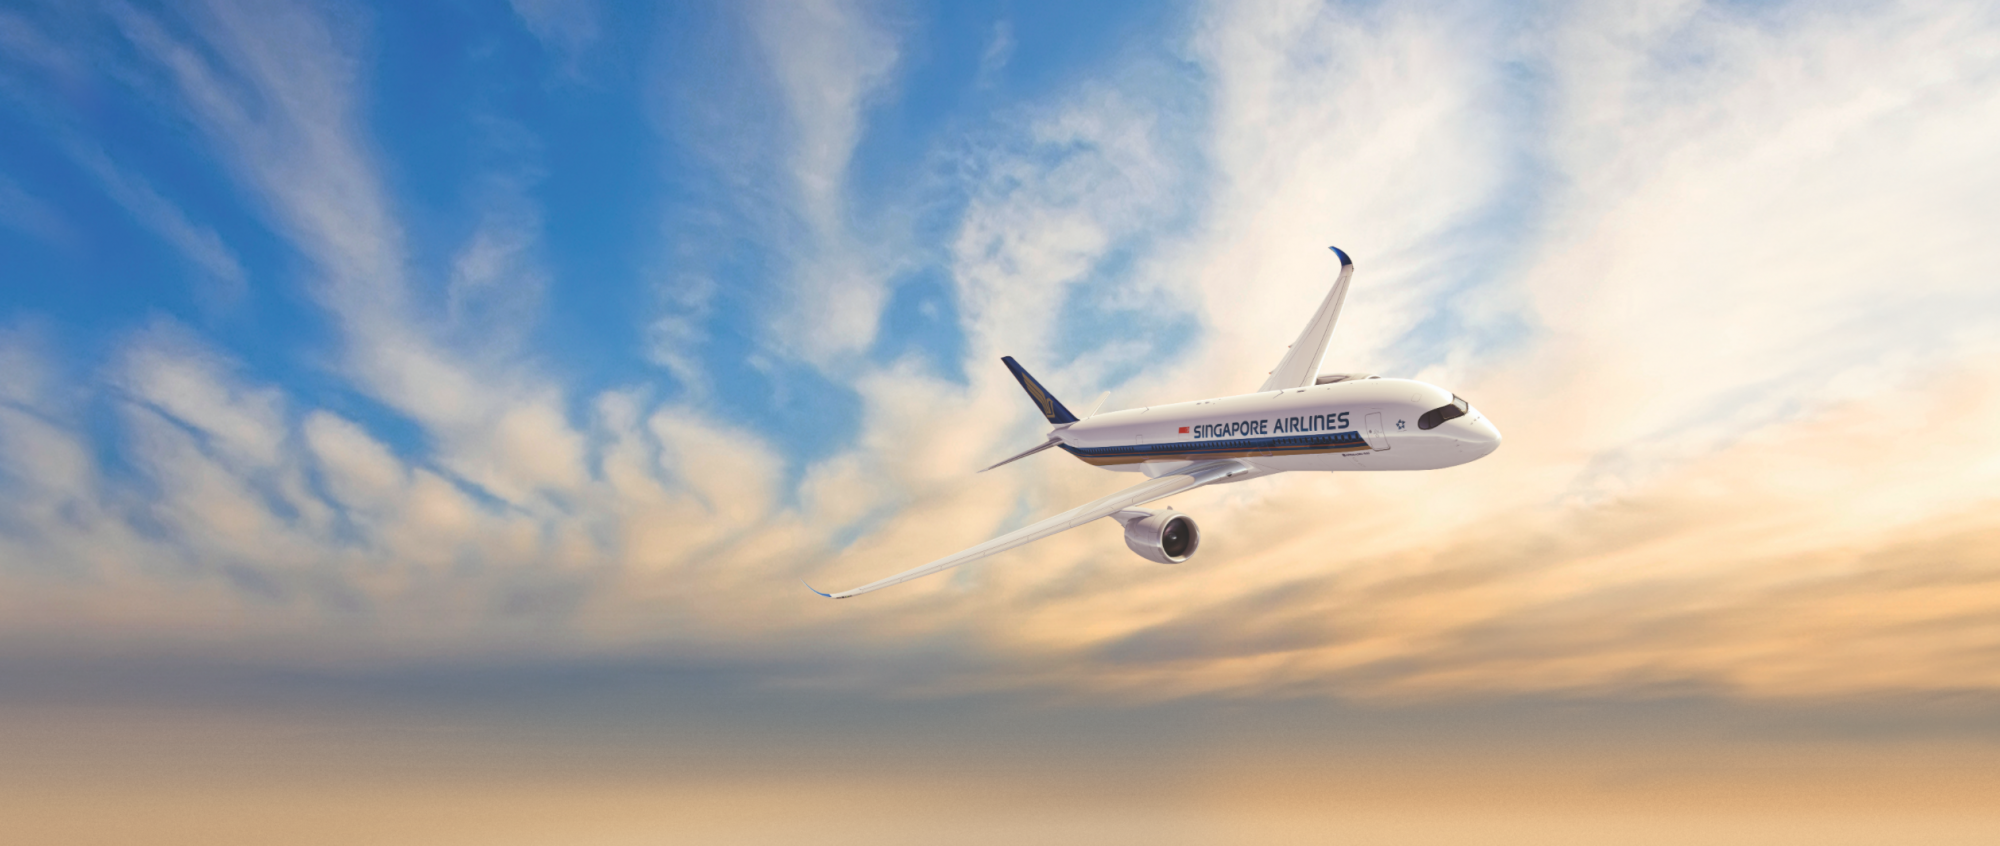 Singapore Airlines To Resume Weekly Non-stop Flights To New York In November 2020